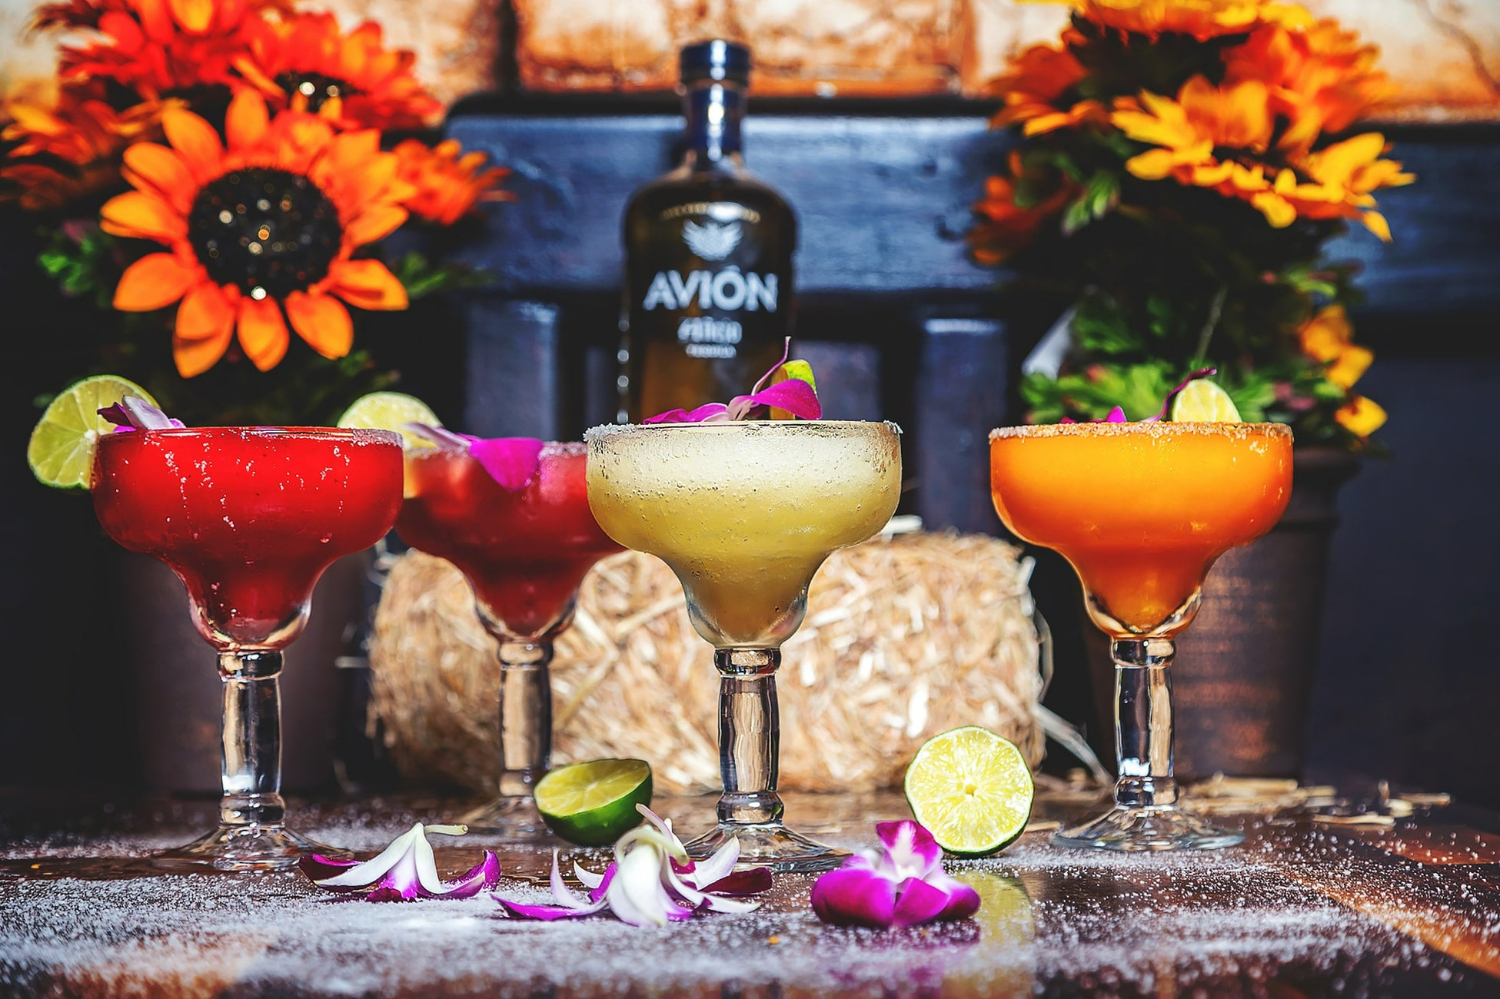 Avoid cocktails if you want to lose weight | Unsplash